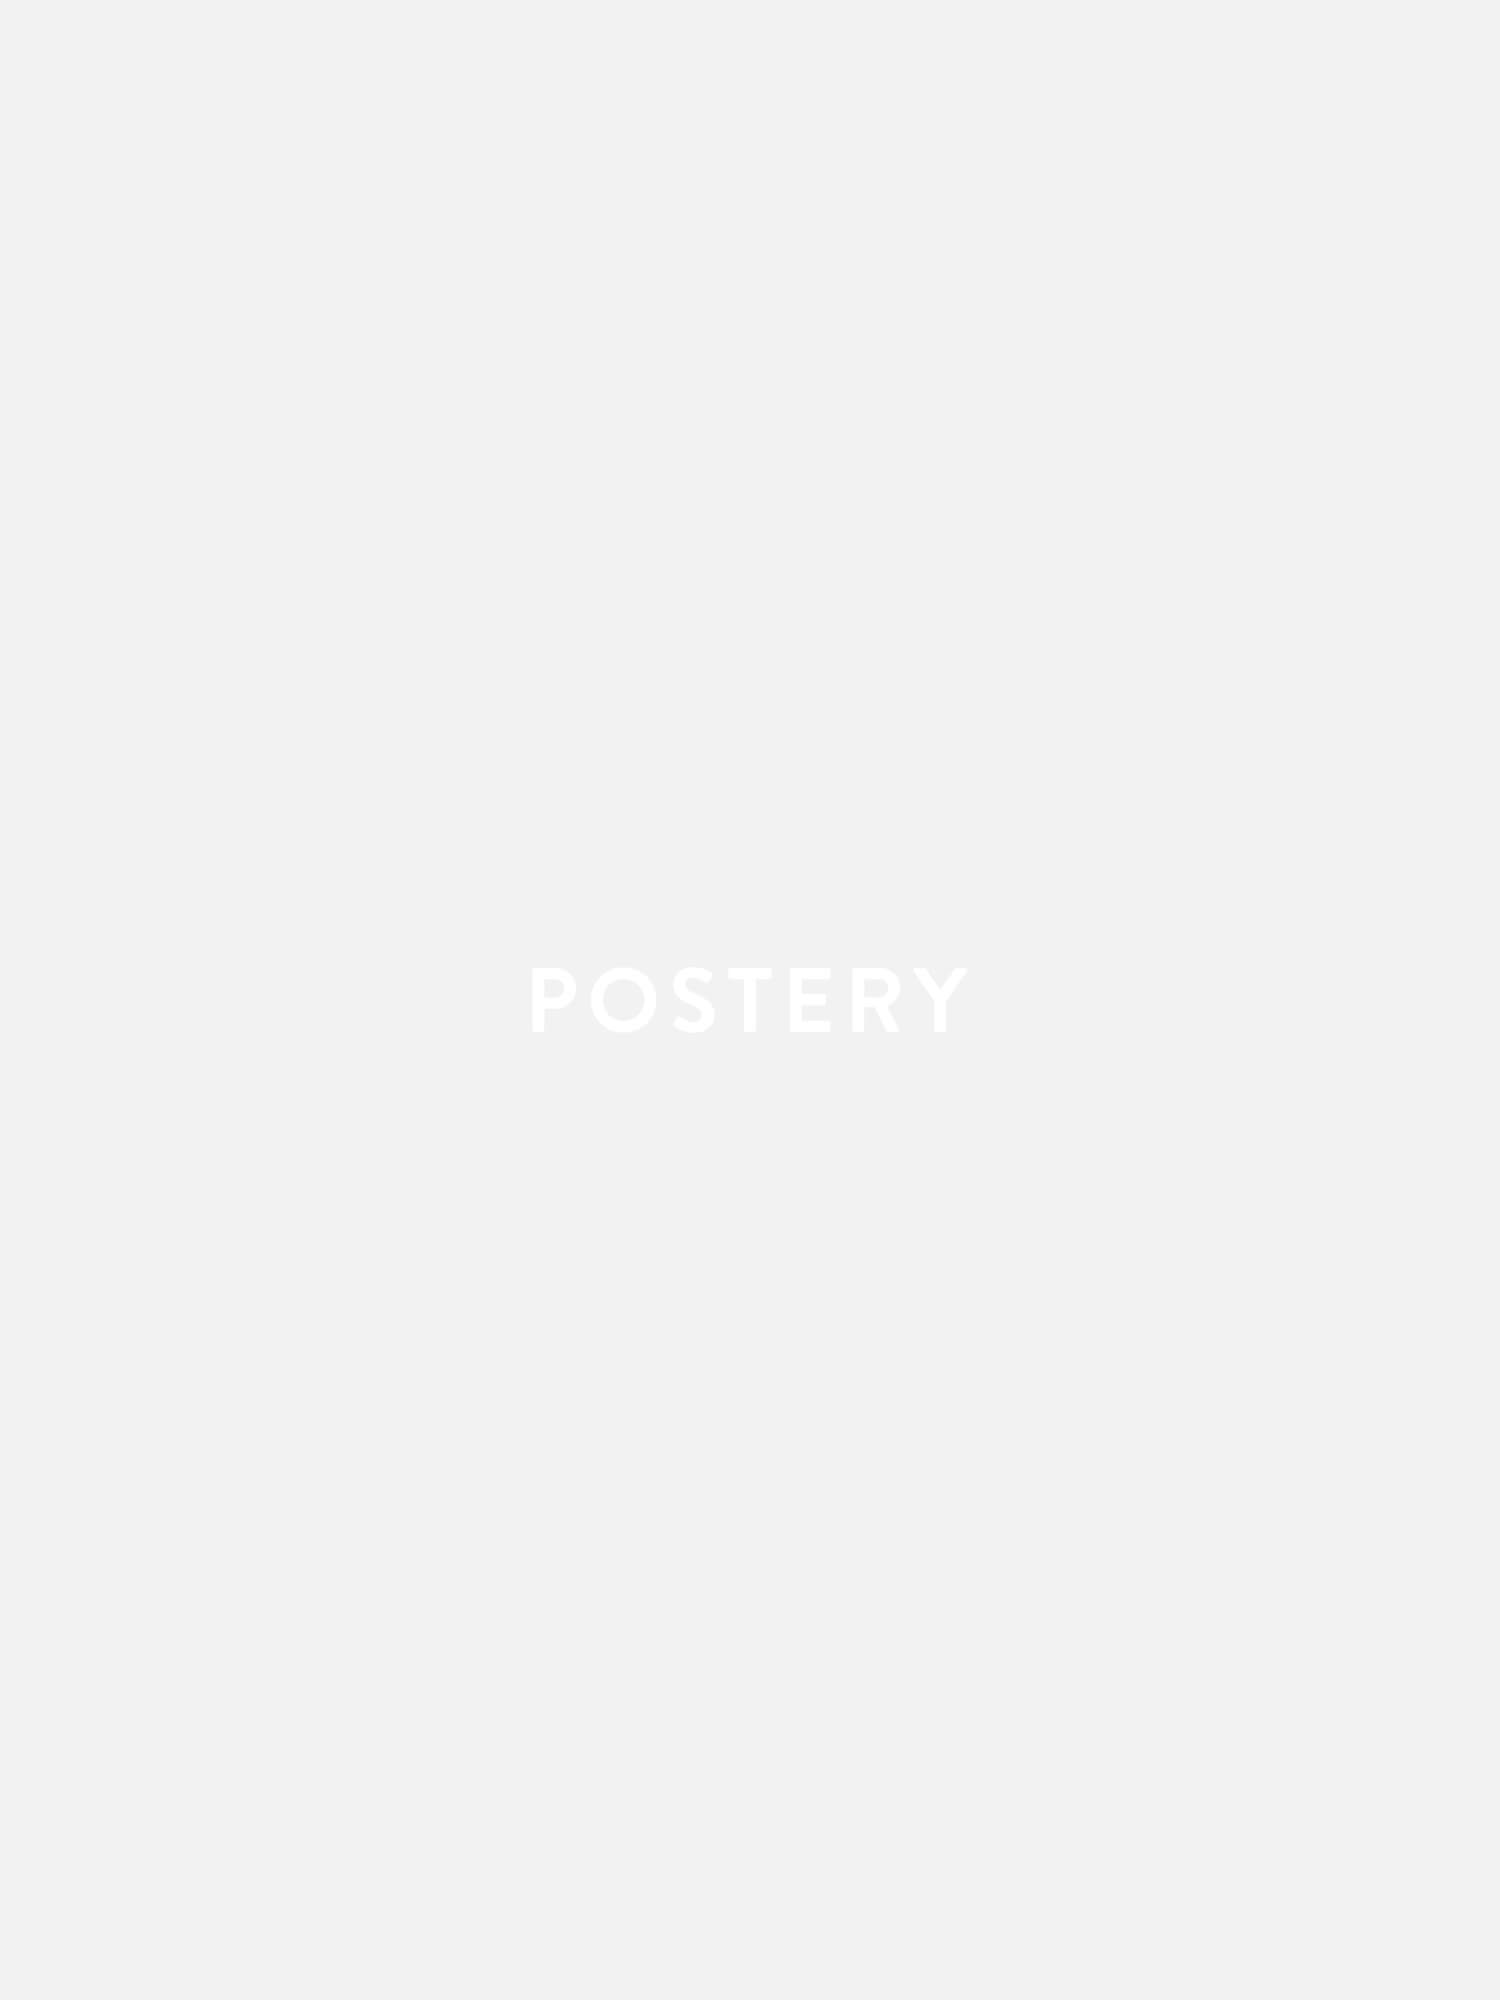 Snowy Mountains Poster